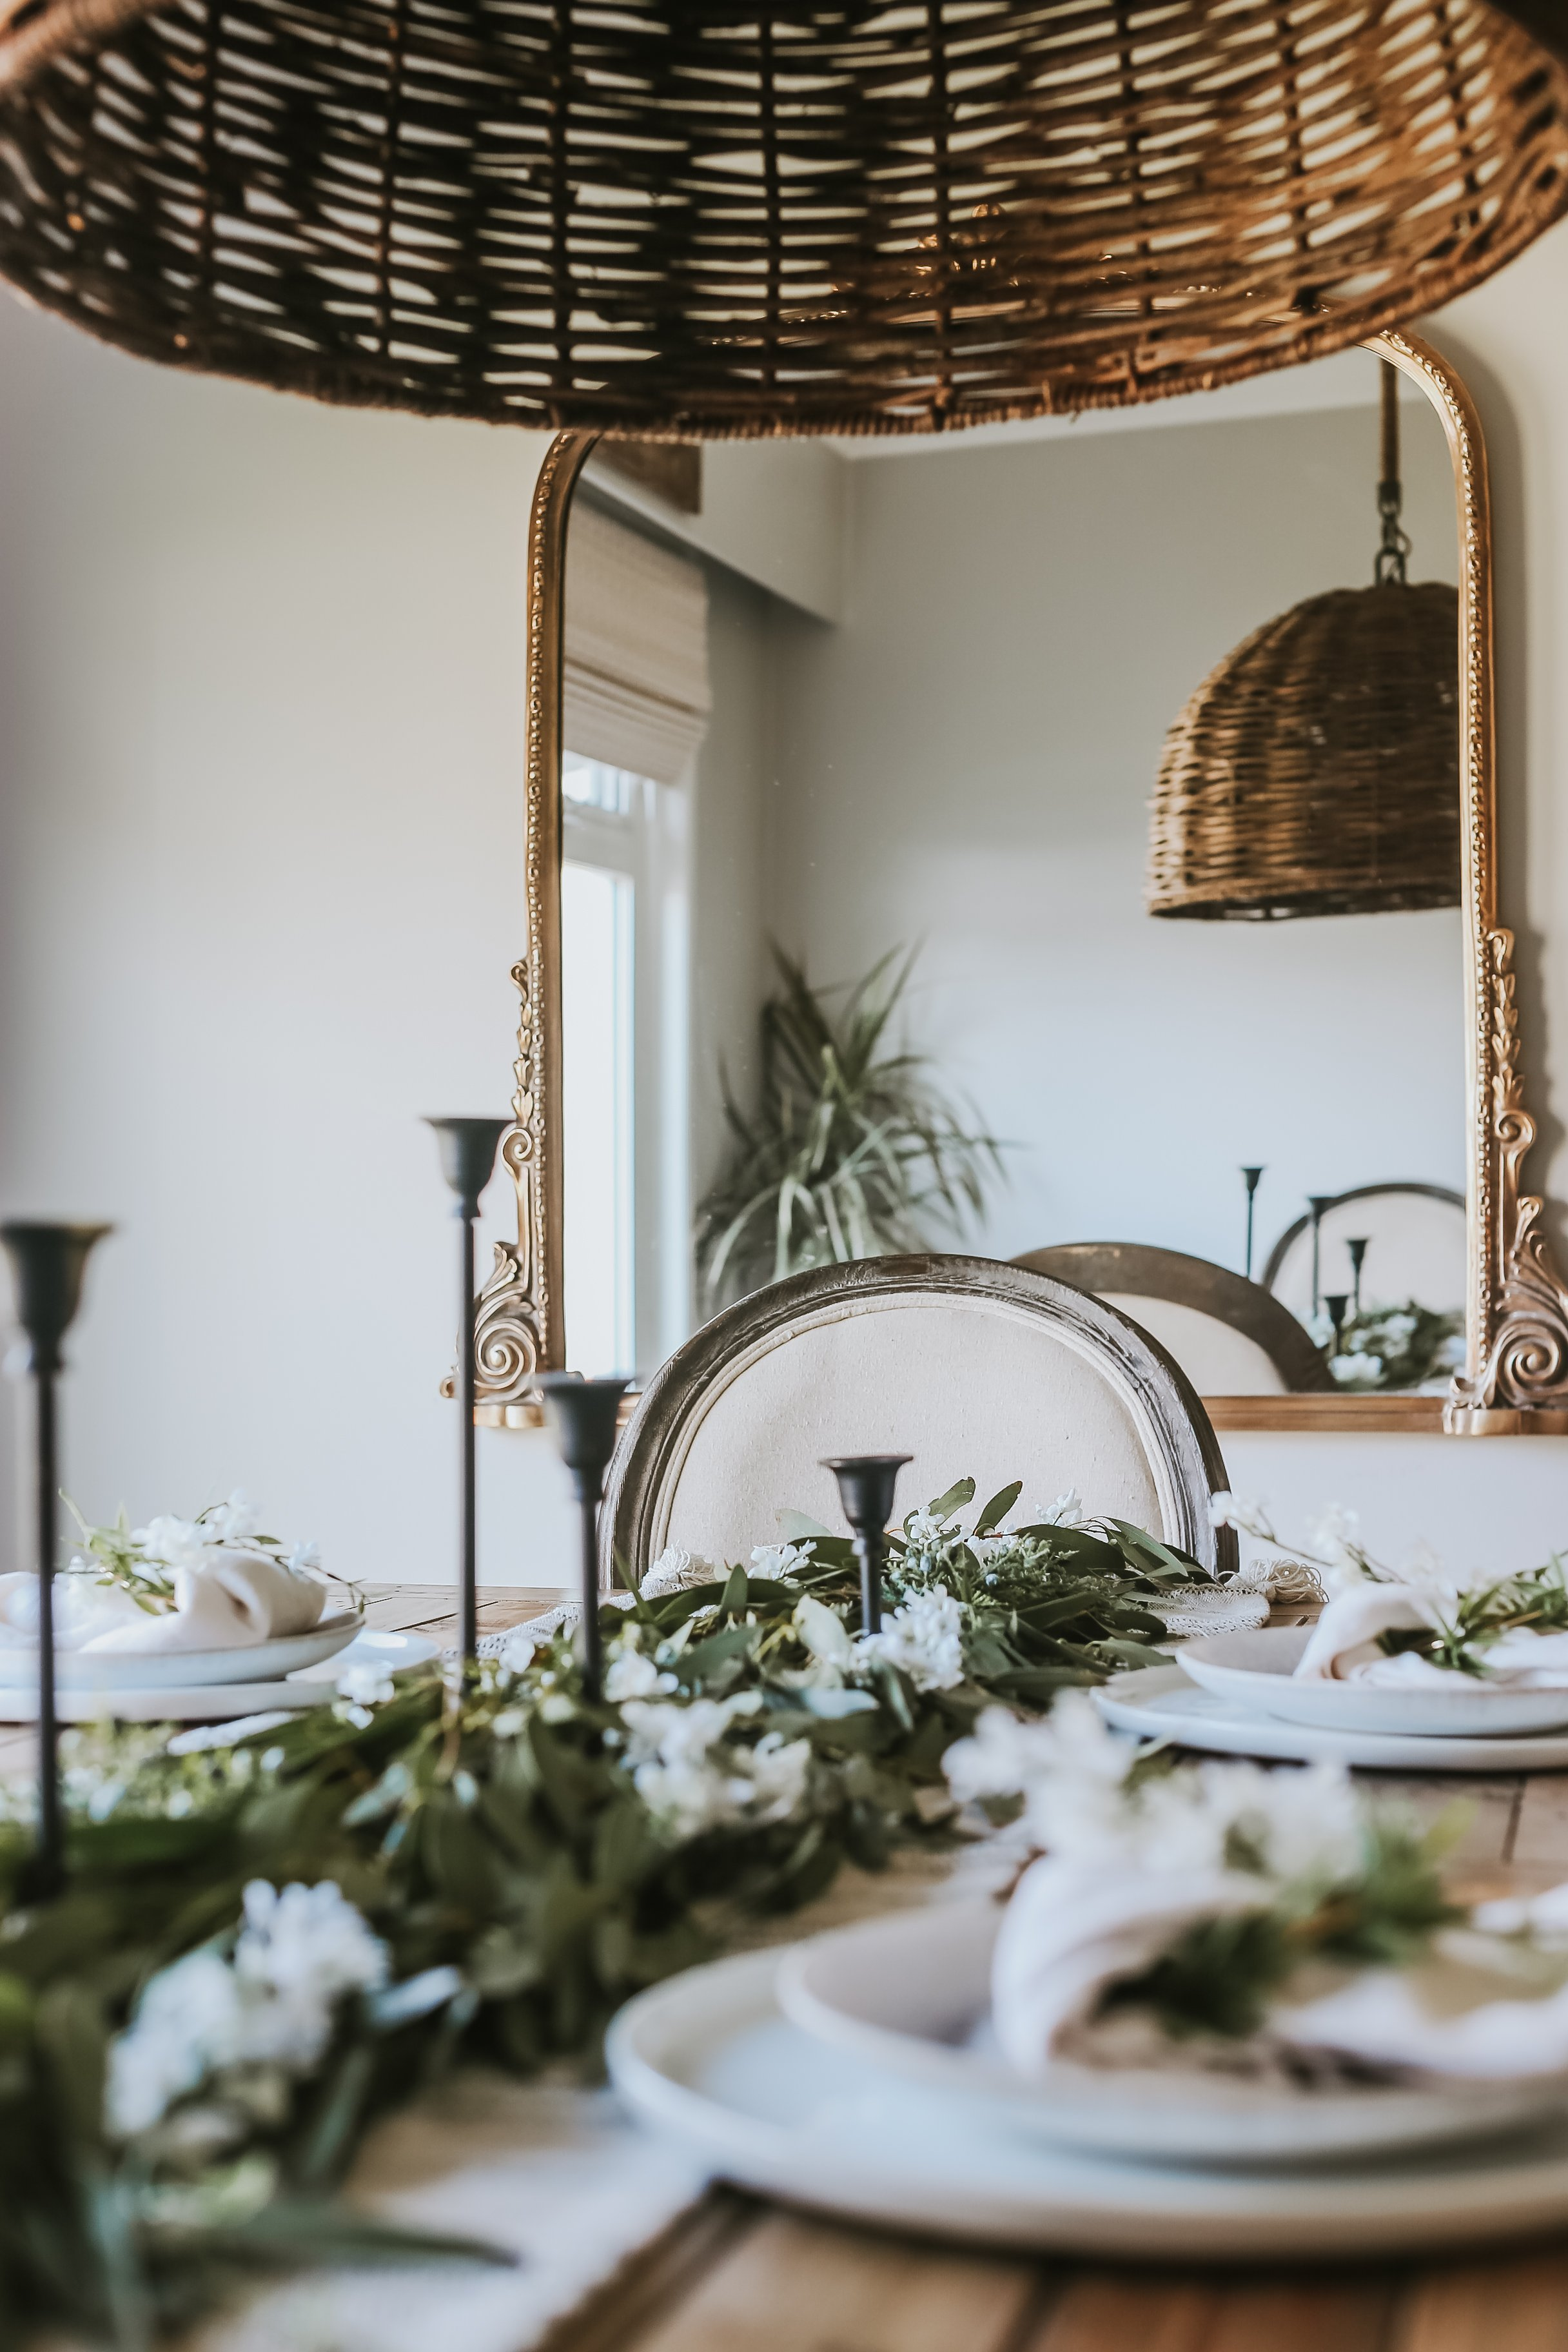 An Easter Tablescape. Since we're all I quarantine, here's an easy way to style your table for easter or spring with foliage from outside and items you have around your home.